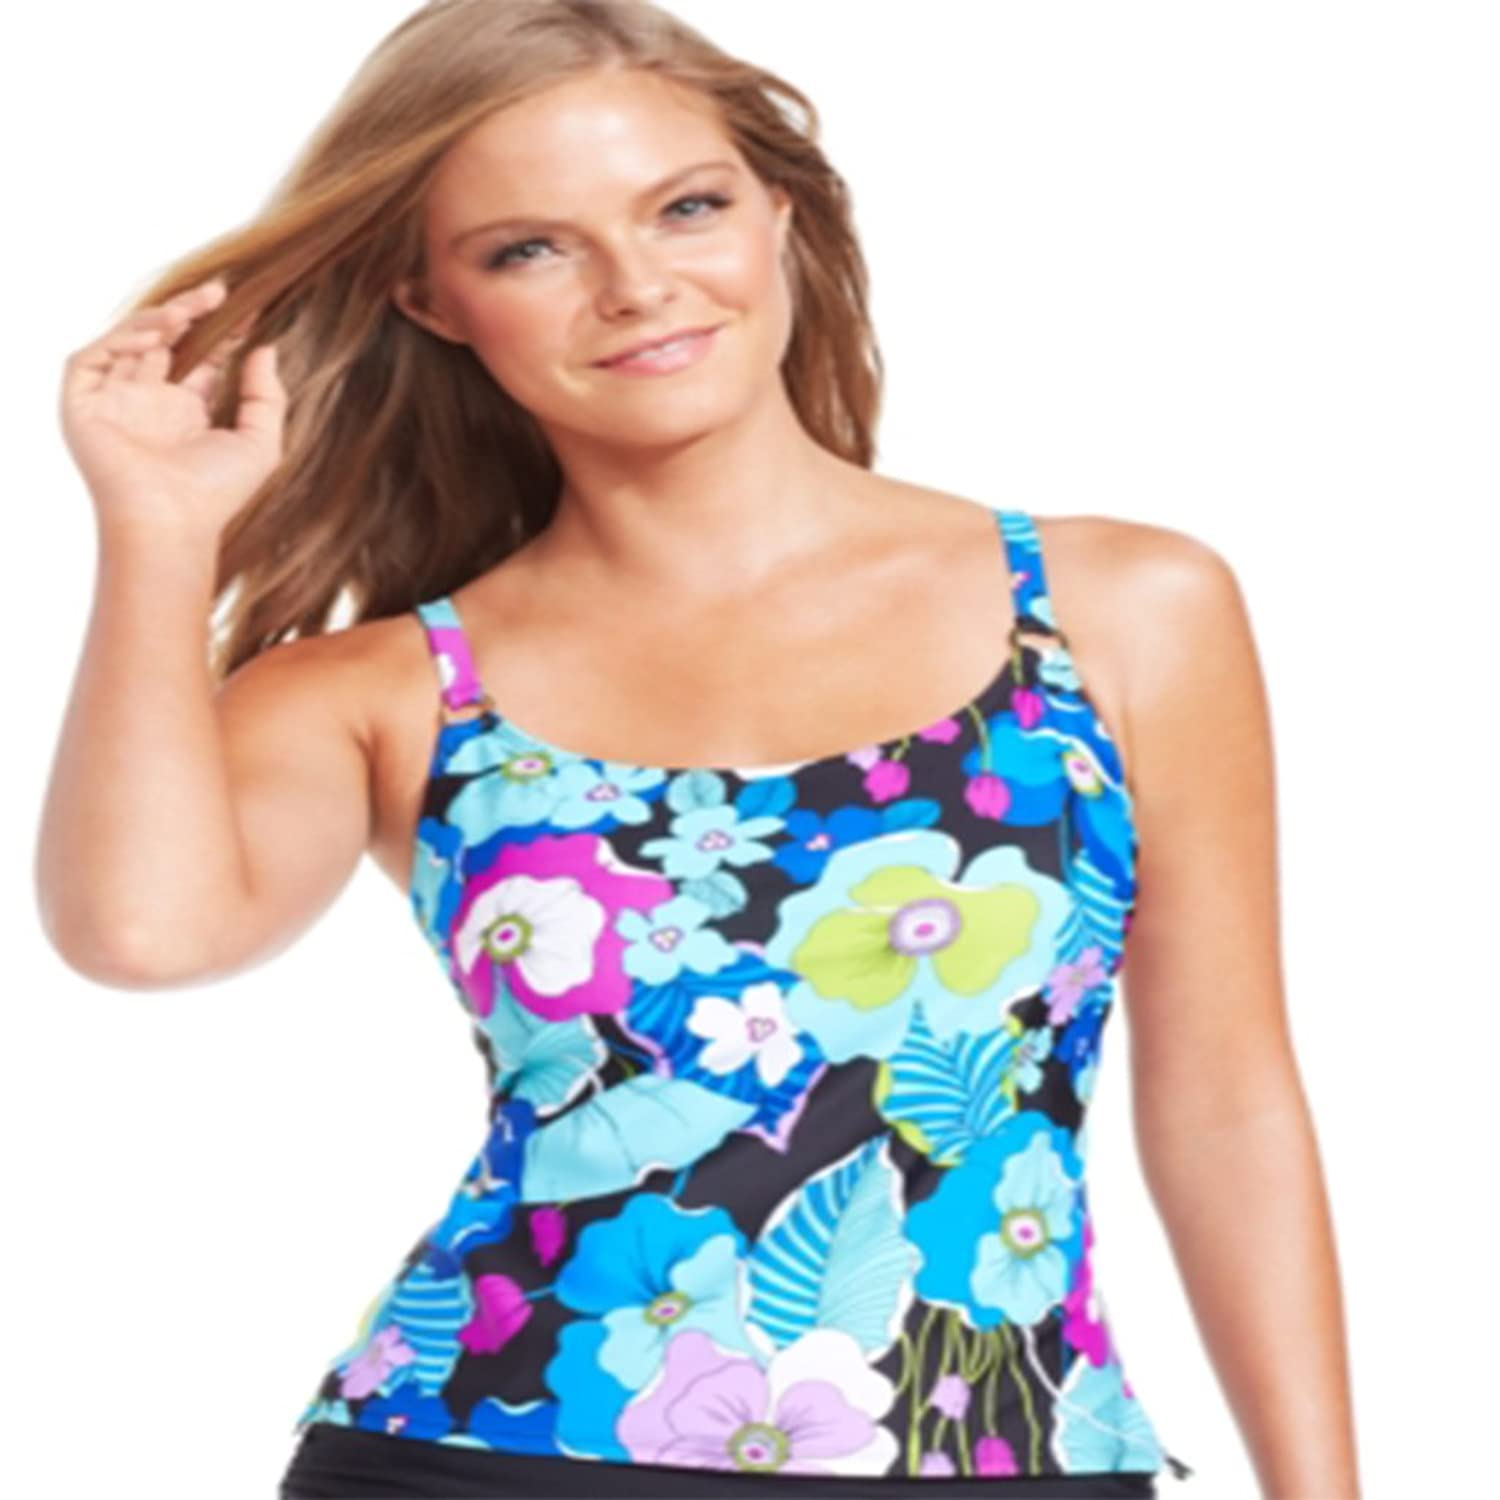 Island Escape tropical-floral-print Tankini Topレディース水着Aqua 8 B01C391O2S